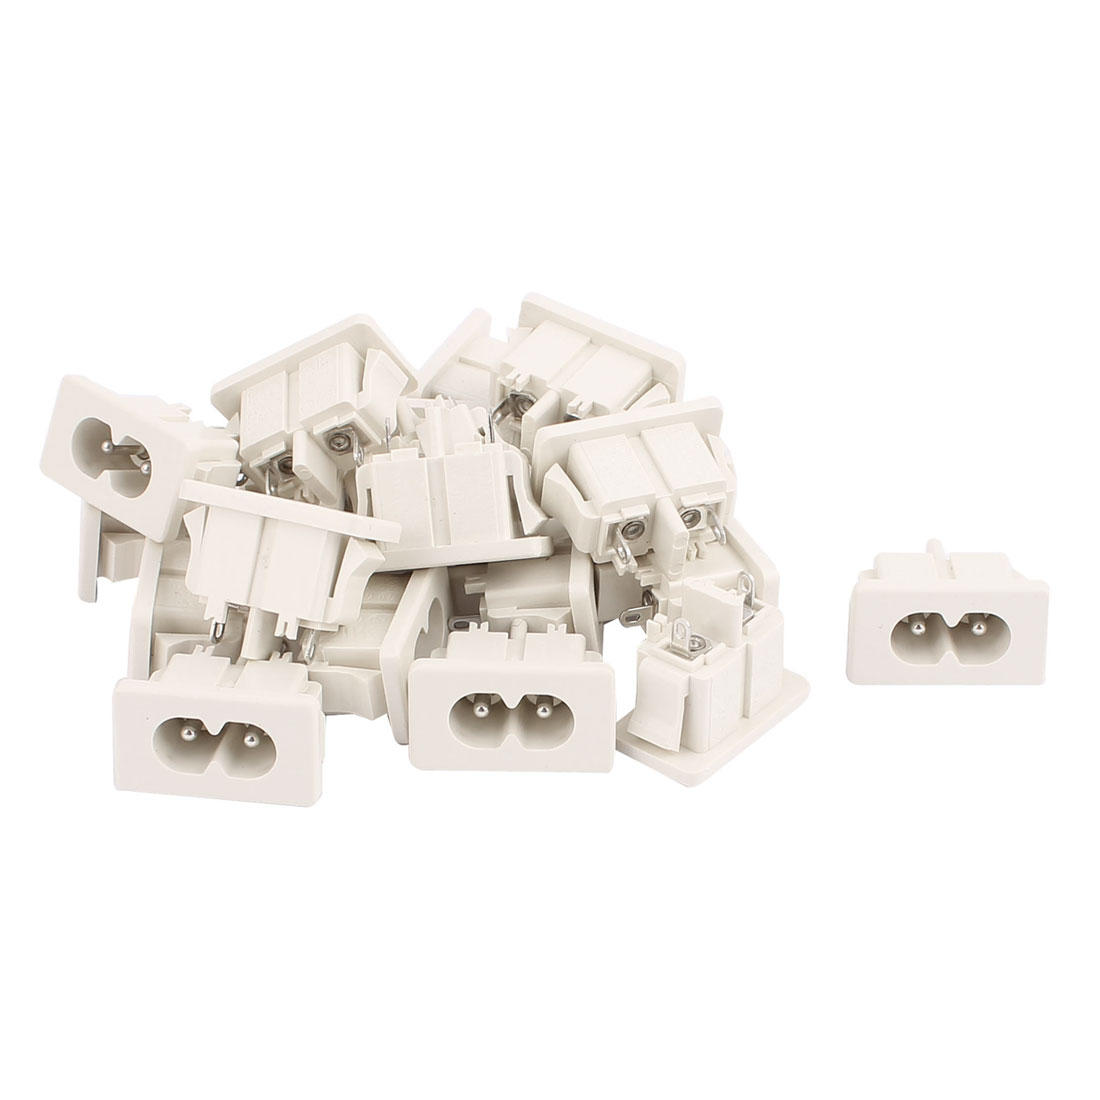 20Pcs AC 250V 5A PCB Board Panel Mount Male 2 Terminals Soldering C8 Type Power Inlet Connector White